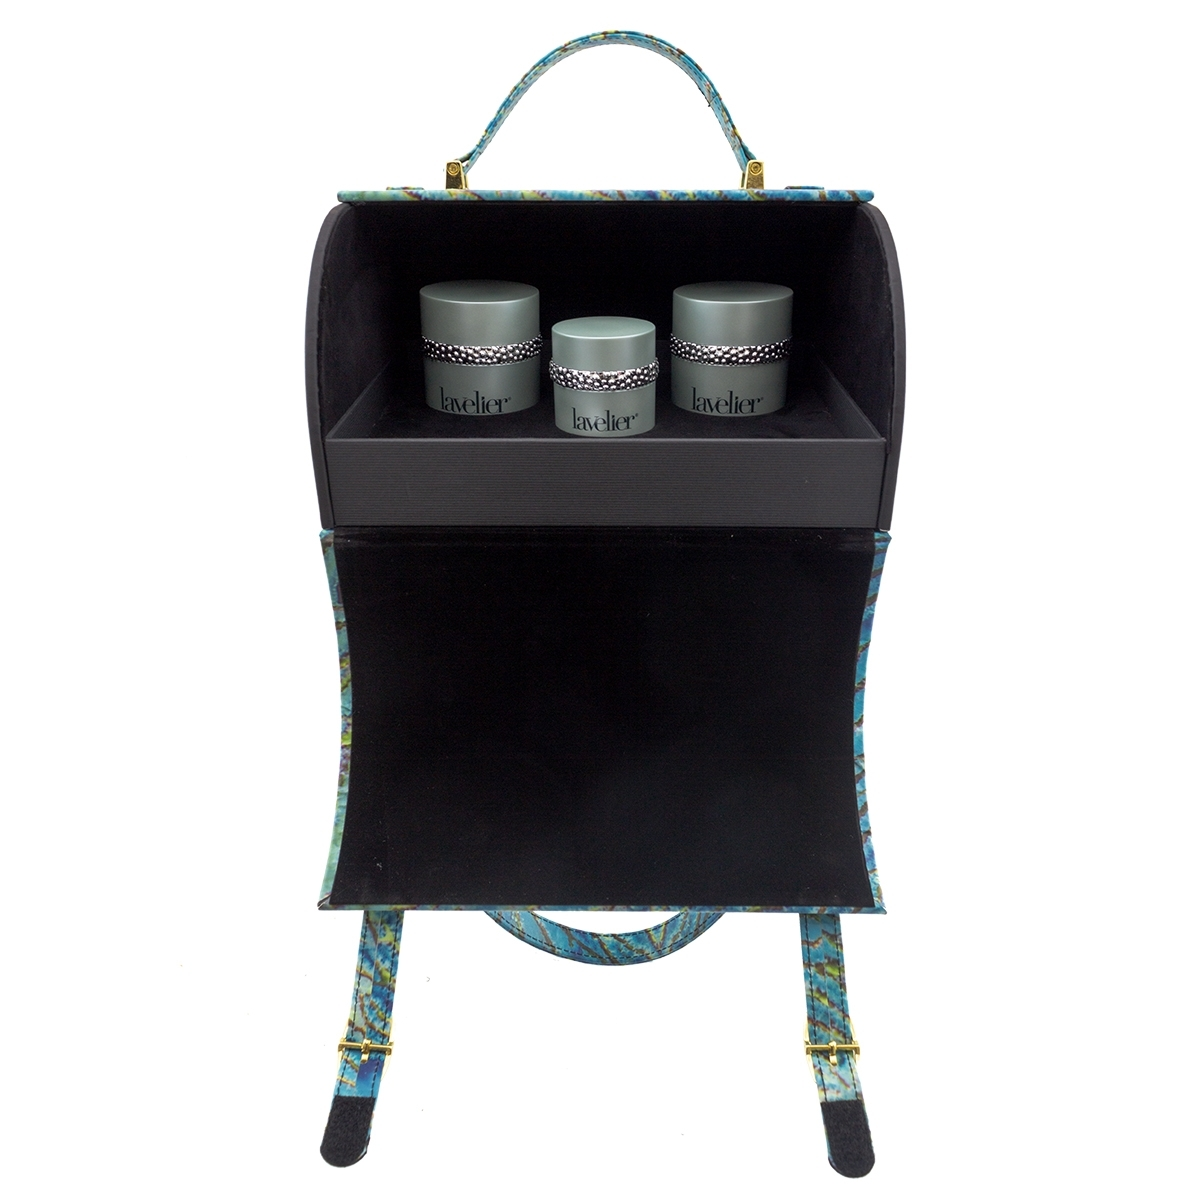 Seagrass Limited Edition Mini Suitcase Open